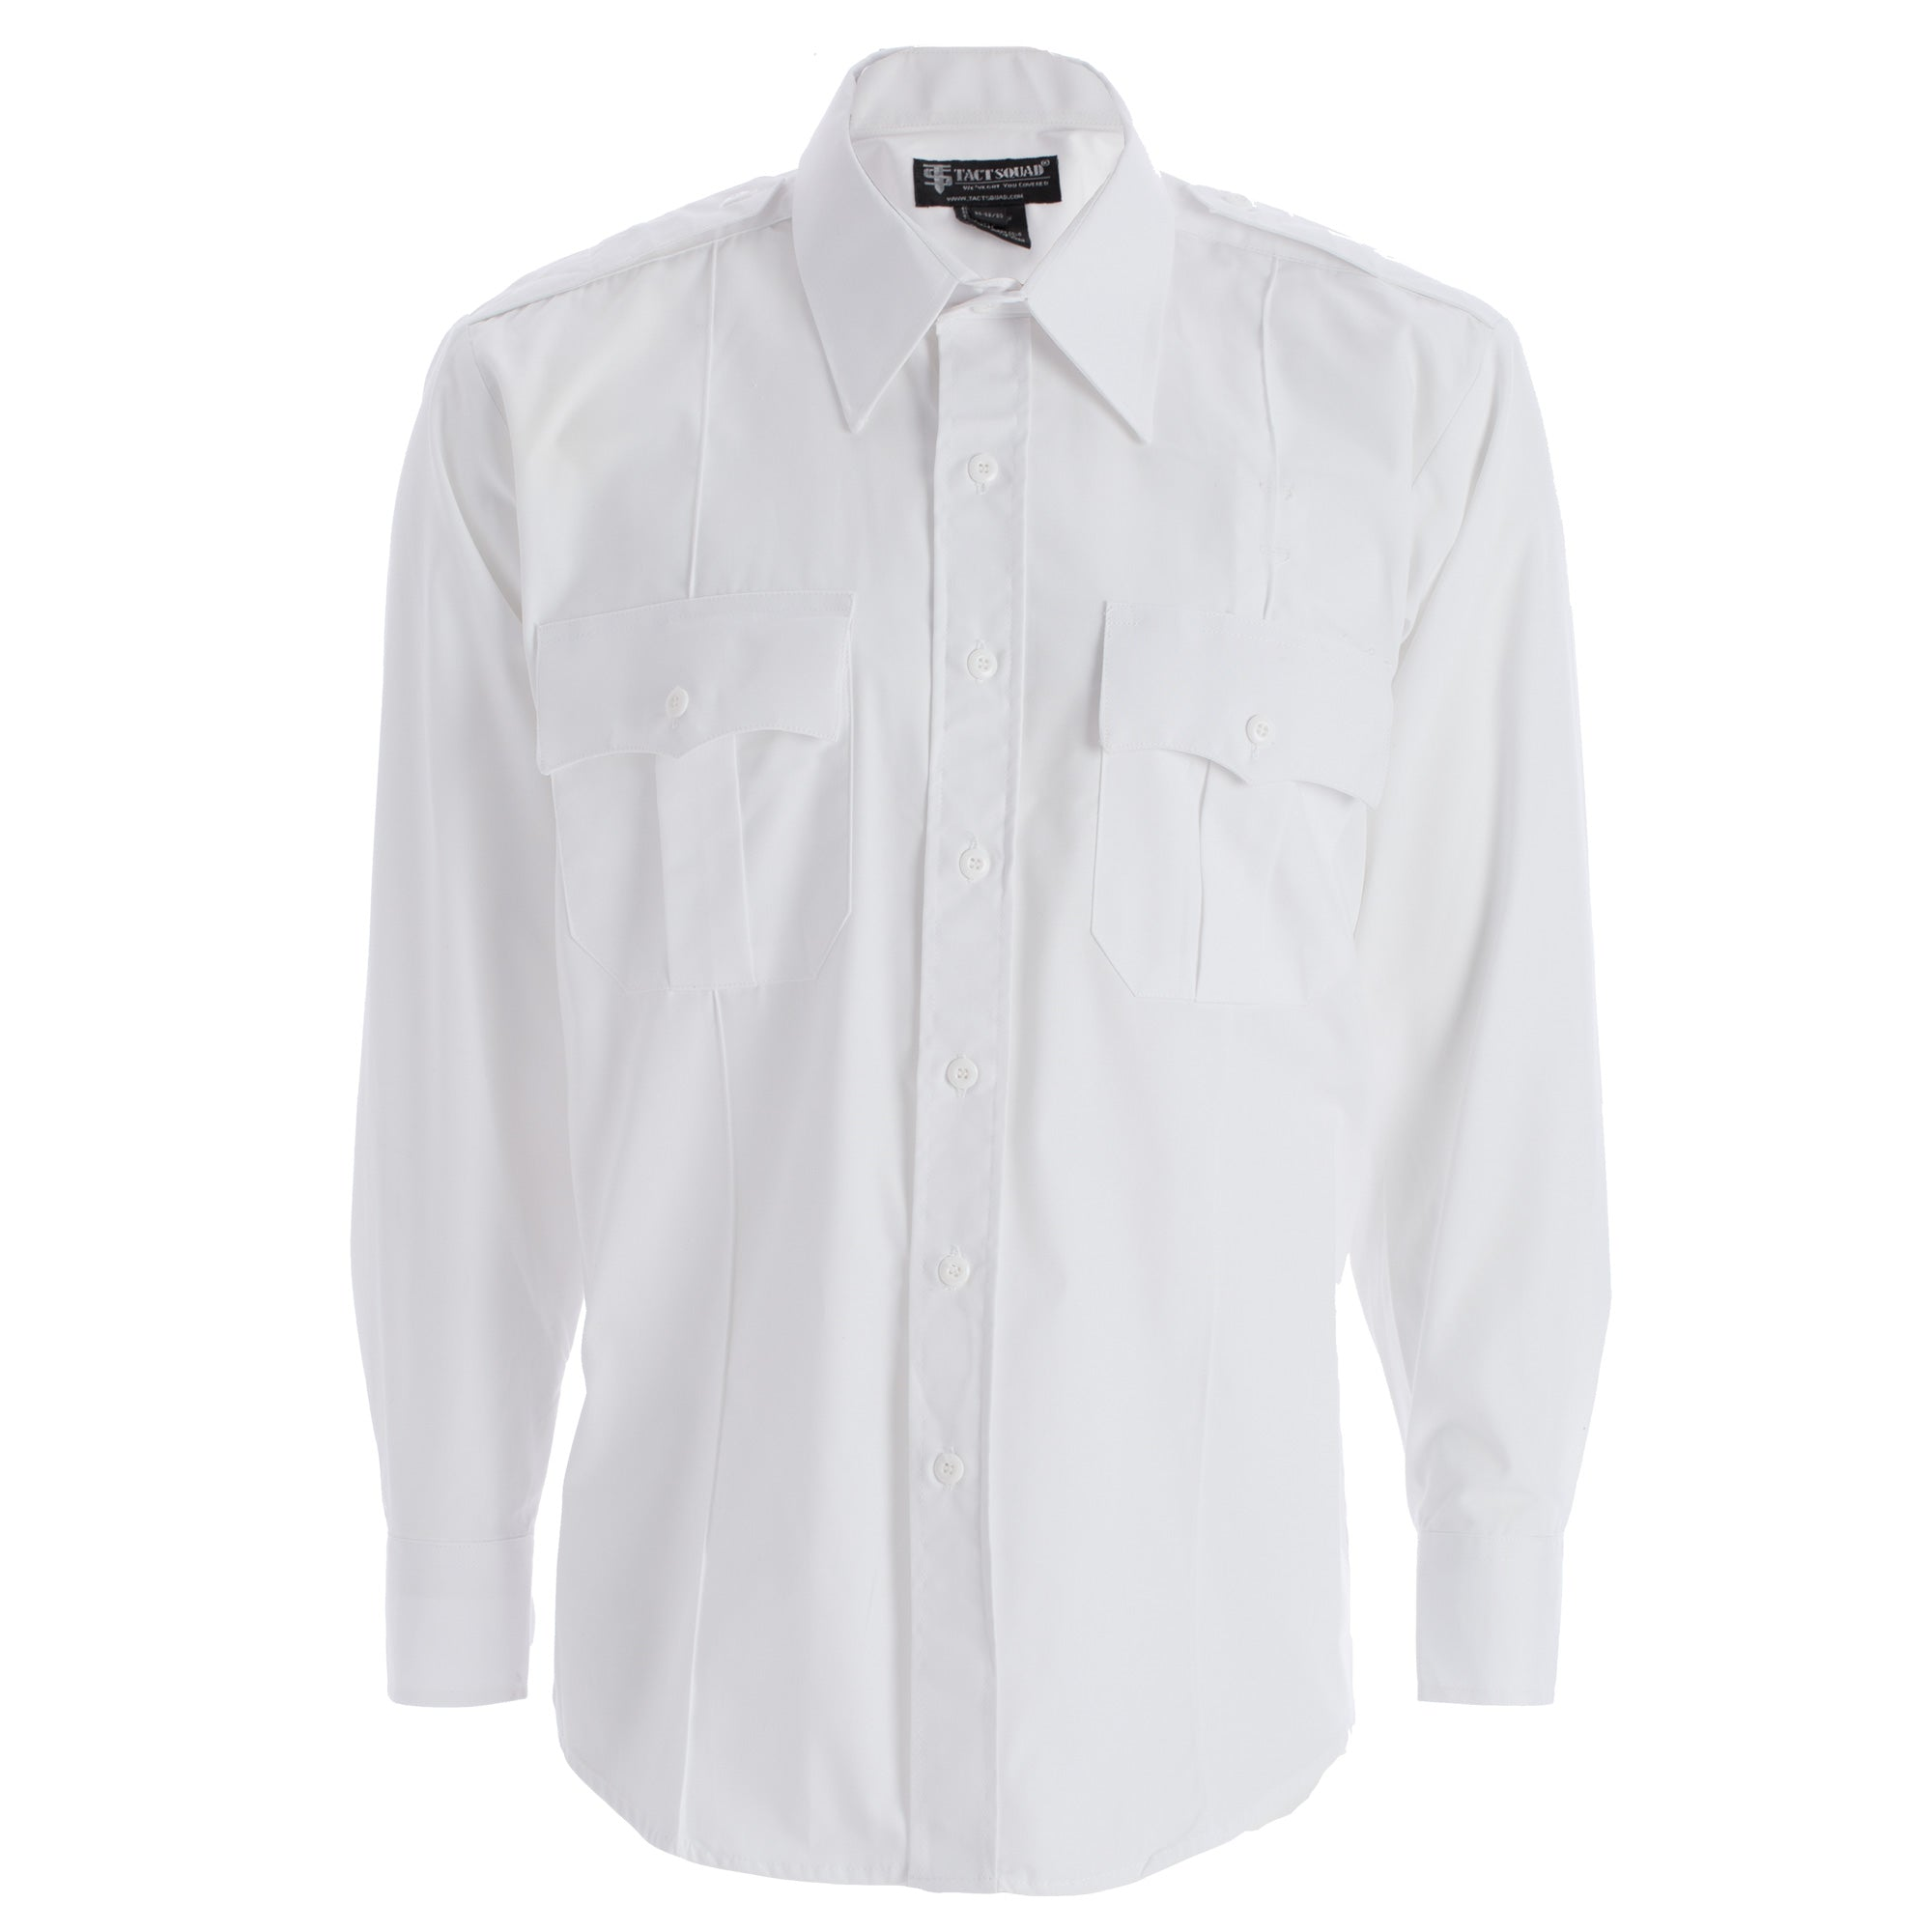 Tact Squad Men's Polyester/Cotton Long Sleeve Uniform Shirt - 8003